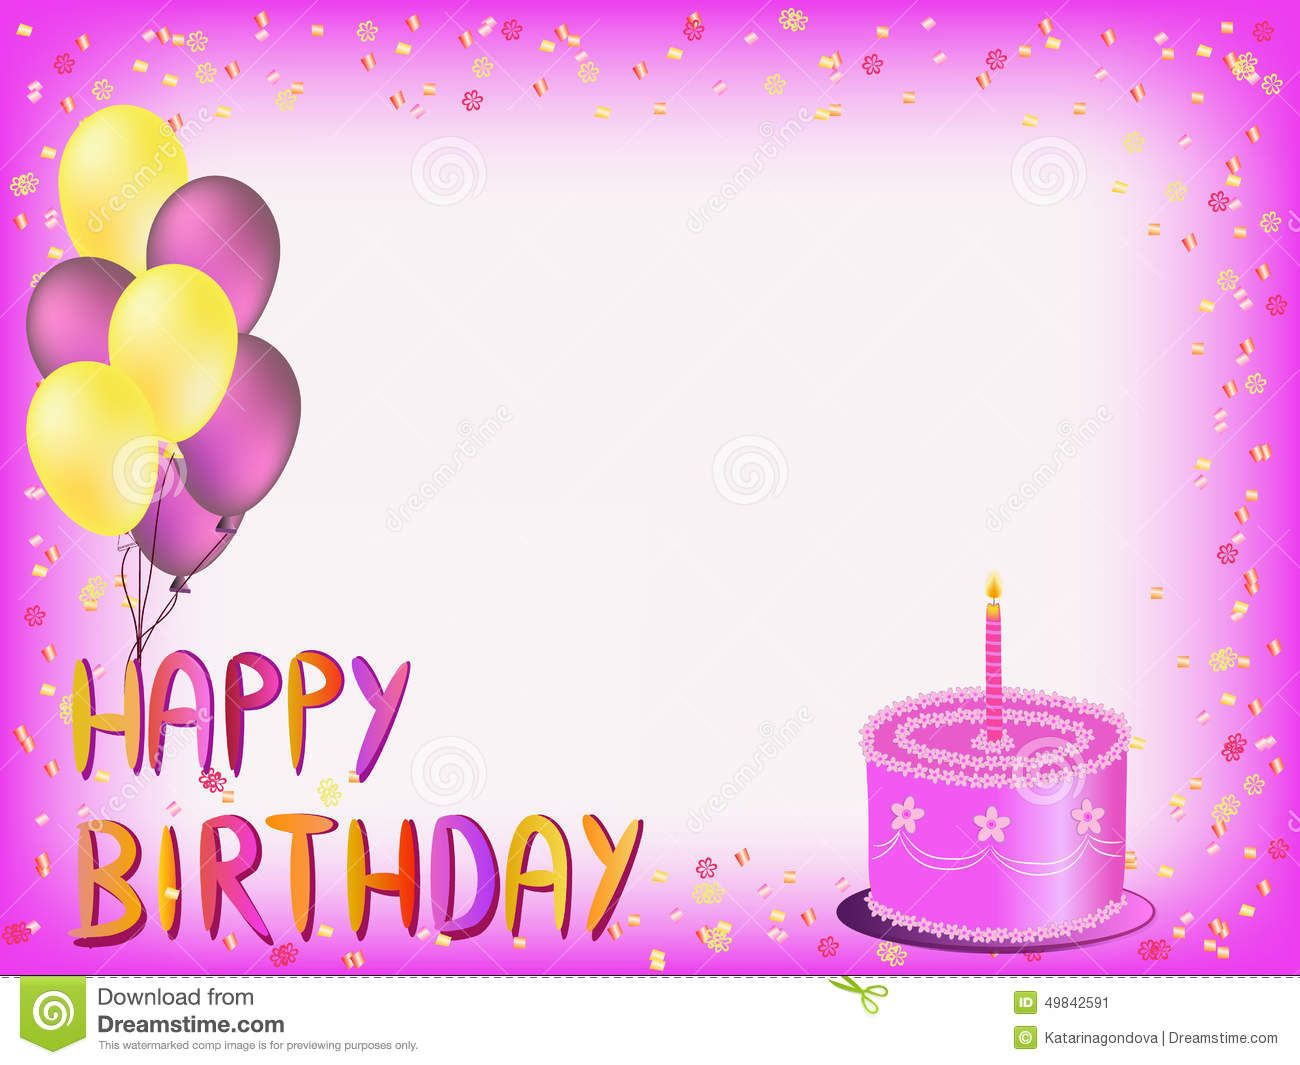 Happy Birthday Greeting Card Have A Happy Pinterest Happy Birthday Greetings Happy